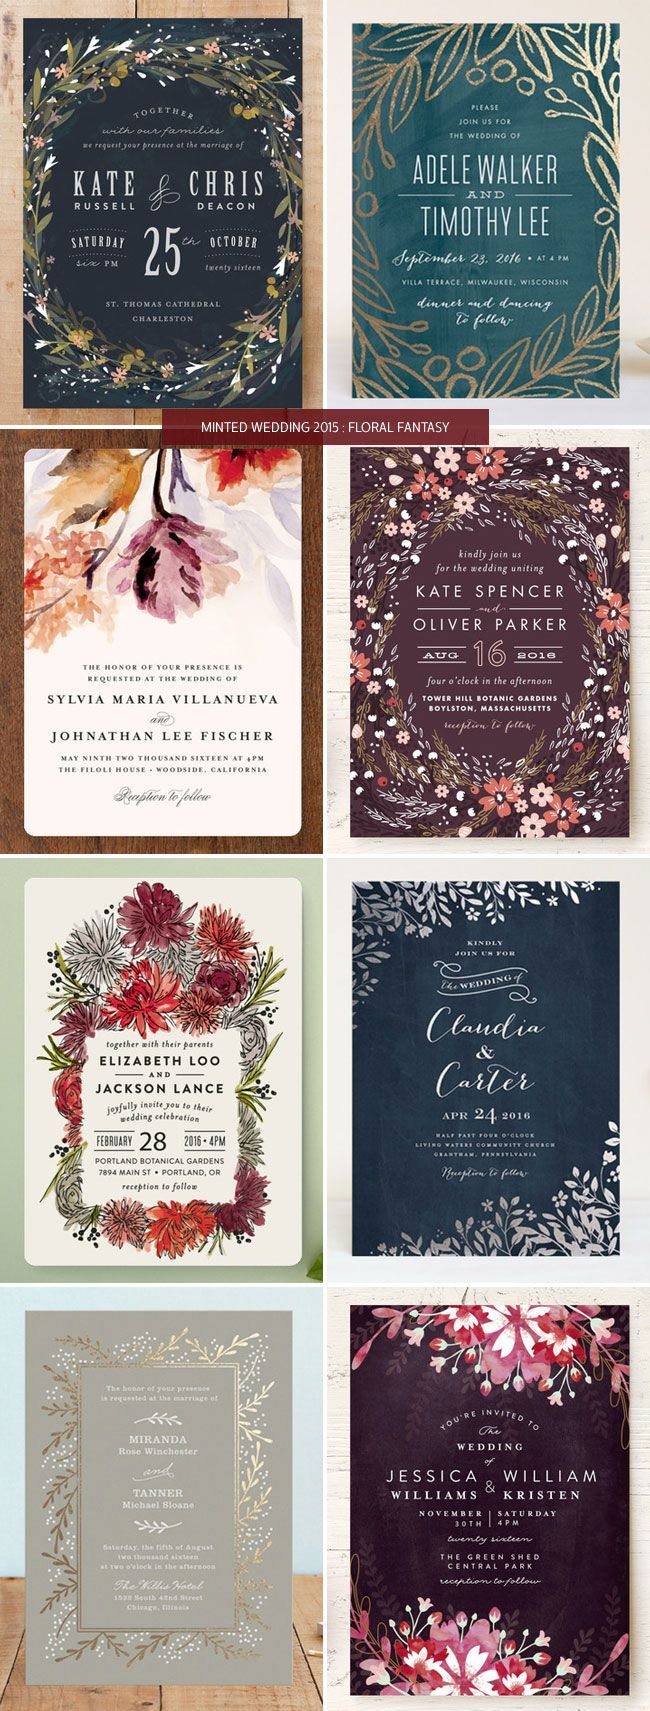 84 best wedding inspirations images on Pinterest Marriage